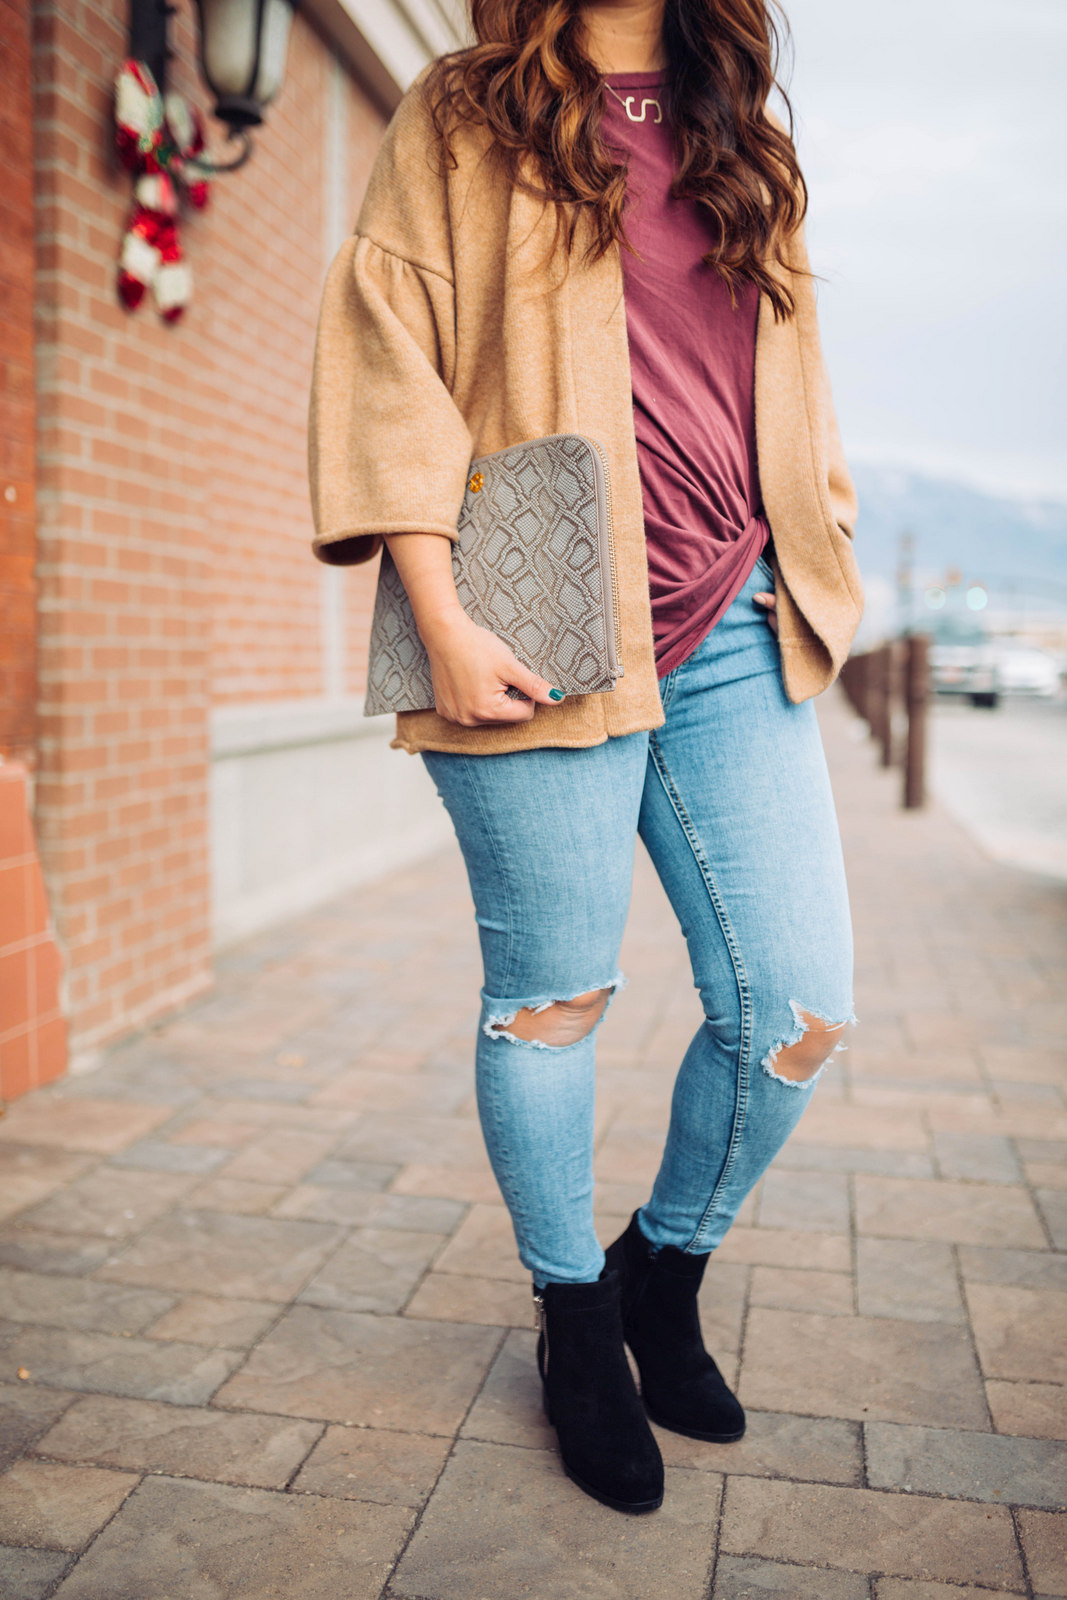 Bell Sleeve Cardigan + Black Boots by Utah fashion blogger Sandy A La Mode